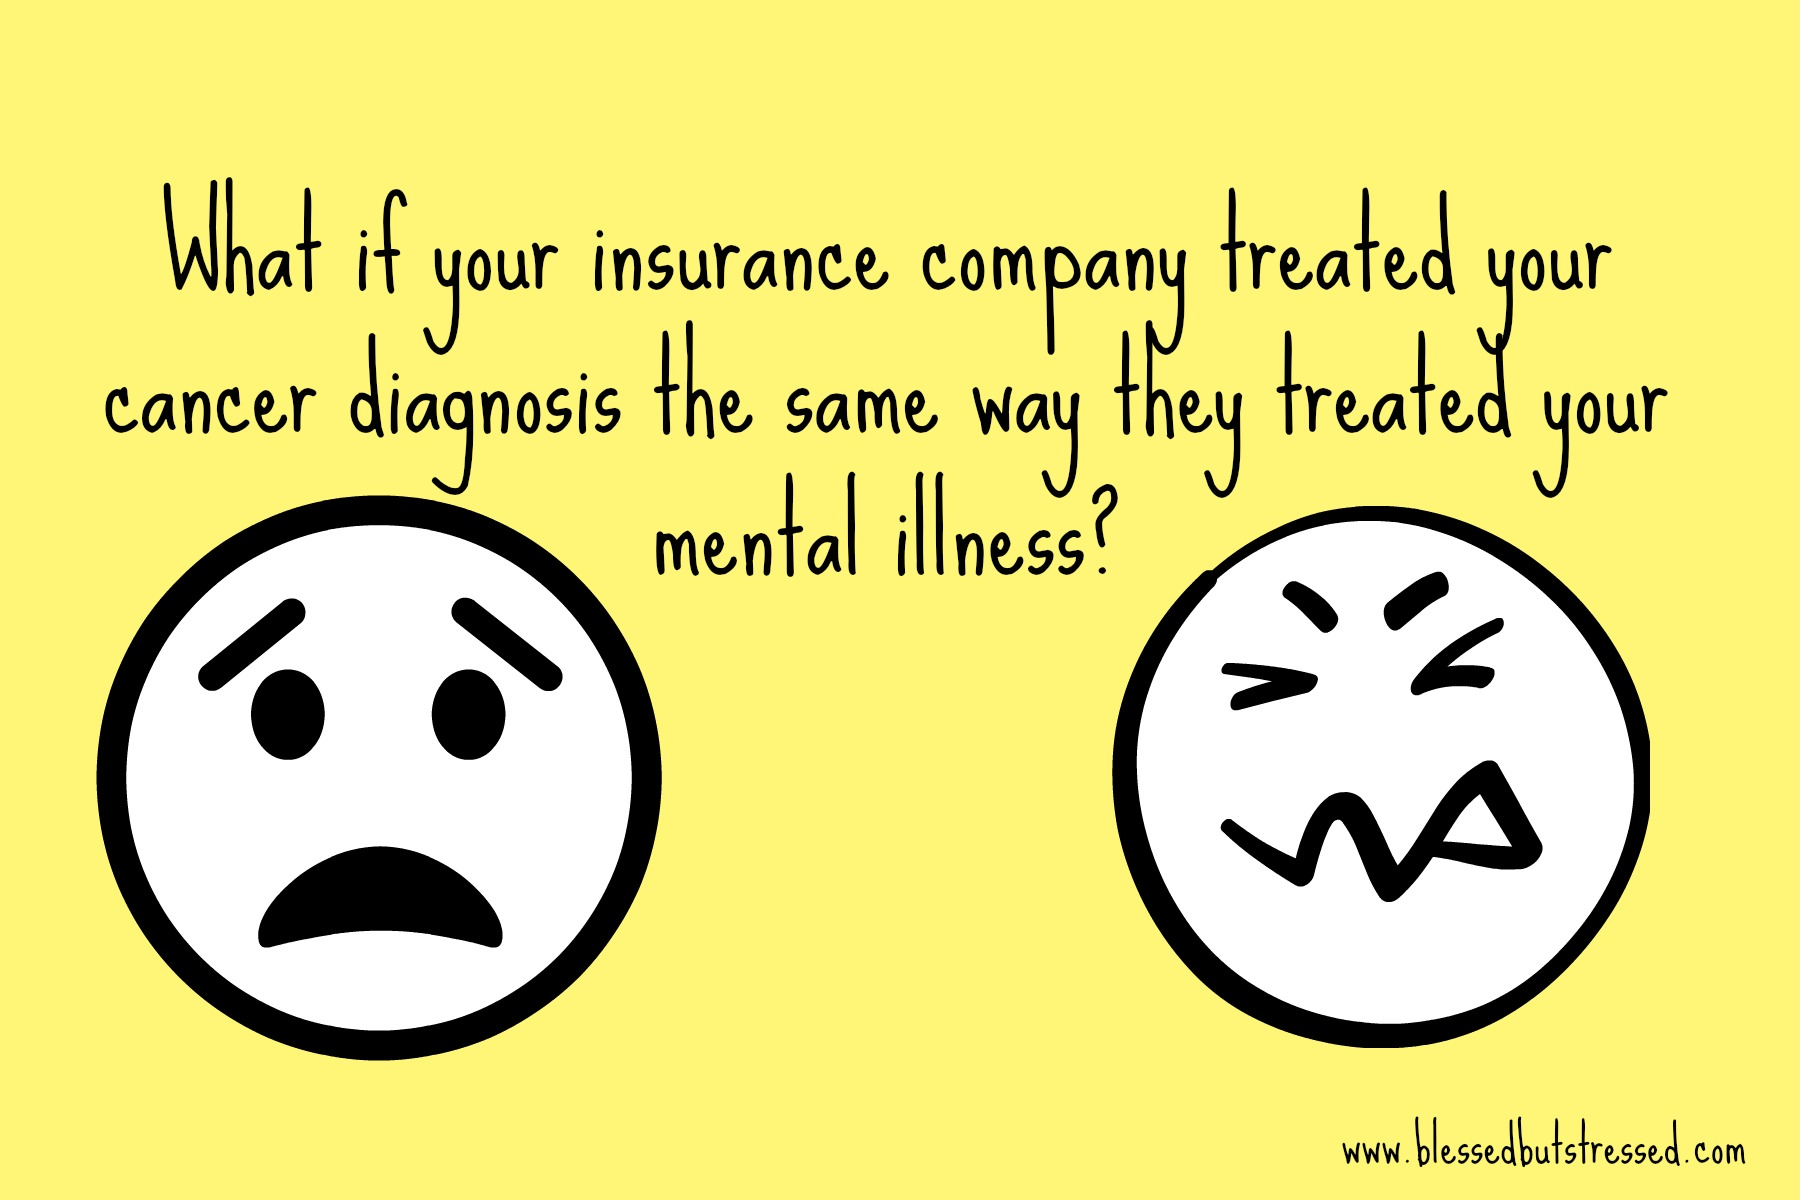 What if cancer were treated like a mental illness?